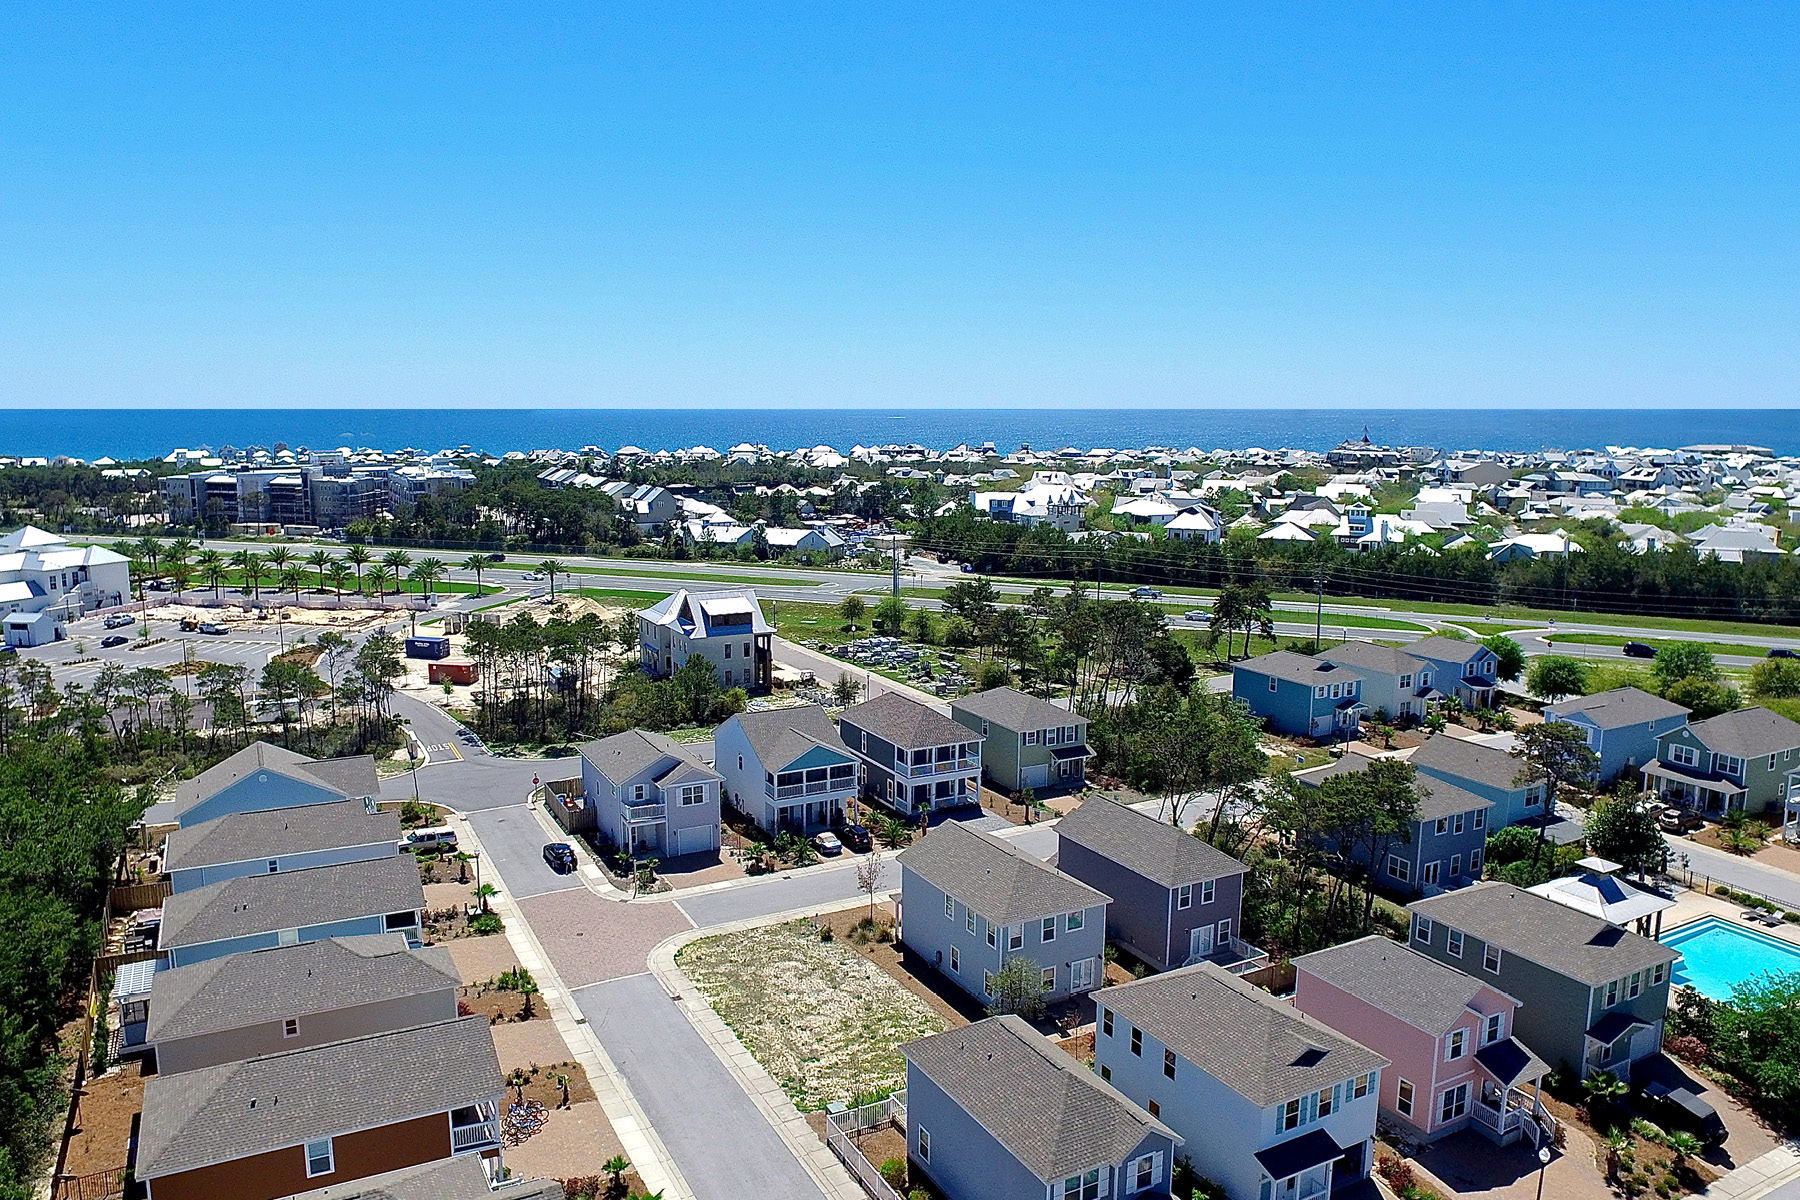 Land for Sale at WEST SHORE PLACE Lot 28 W Shore Lane Inlet Beach, Florida, 32461 United States